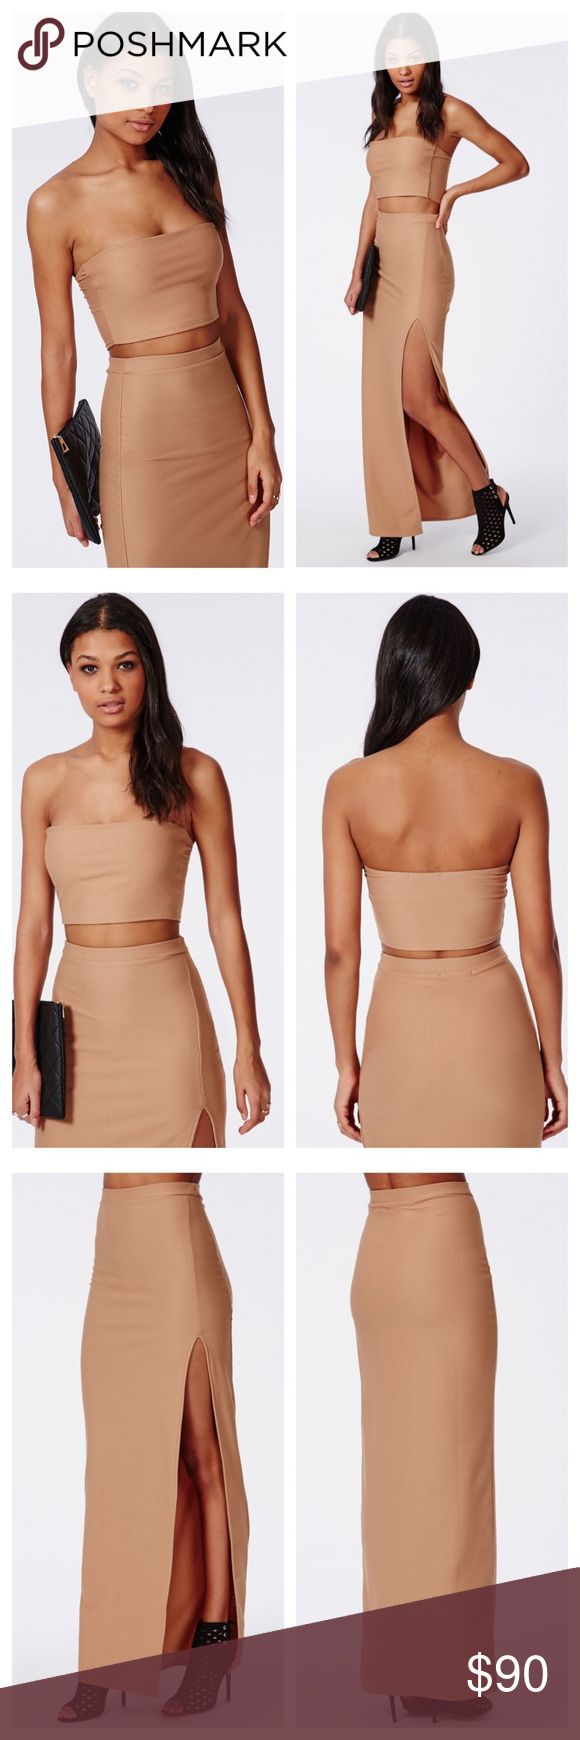 Missguided Bandeau Top & Maxi Skirt Missguided Bandeau Tube Top and Thigh High Split Maxi Skirt is a seductive set that will leave everyone mesmerized. The camel bandeau top and maxi skirt is made of a stretchy material that accentuates your curves. If you are seeking an ensemble that captures the crowd's attention, then this outfit is perfect for you!  *IMPORTANT: The US size 6 has tags attached. The size US 4 does not have its tags attached but has never been worn before. Missguided Skirts…